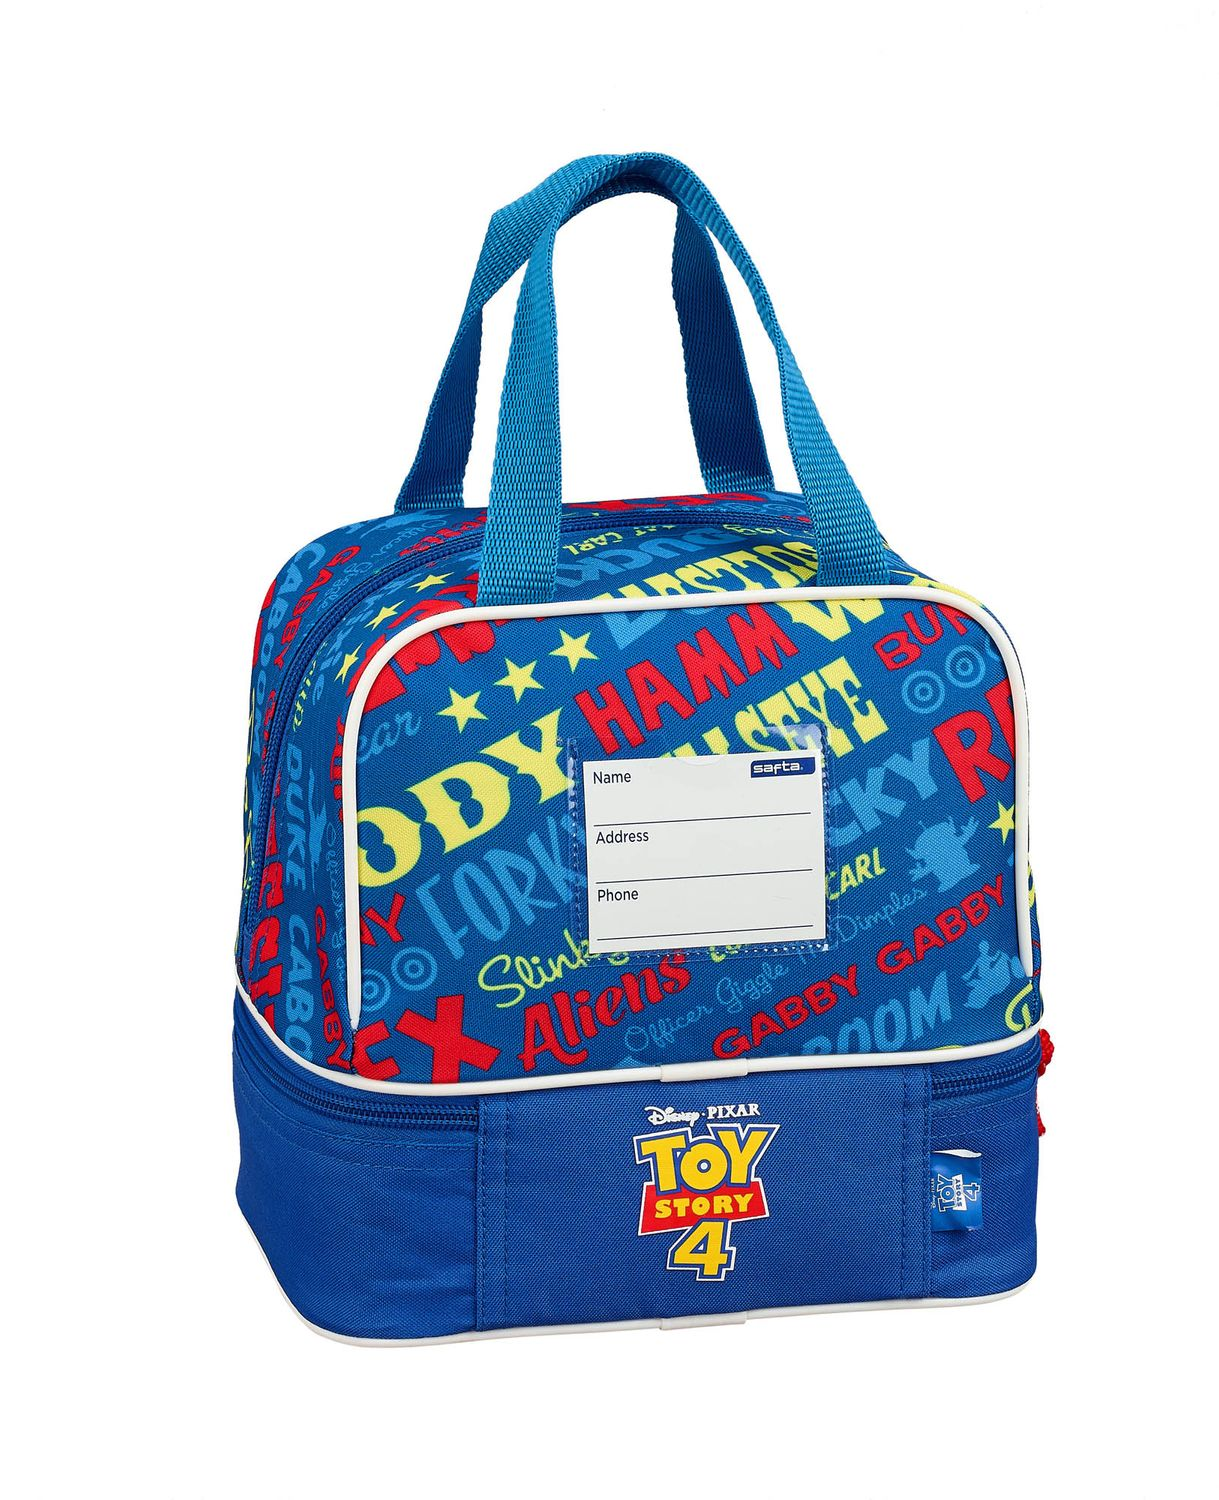 Toy Story 4 Lunch Bag Double – image 2